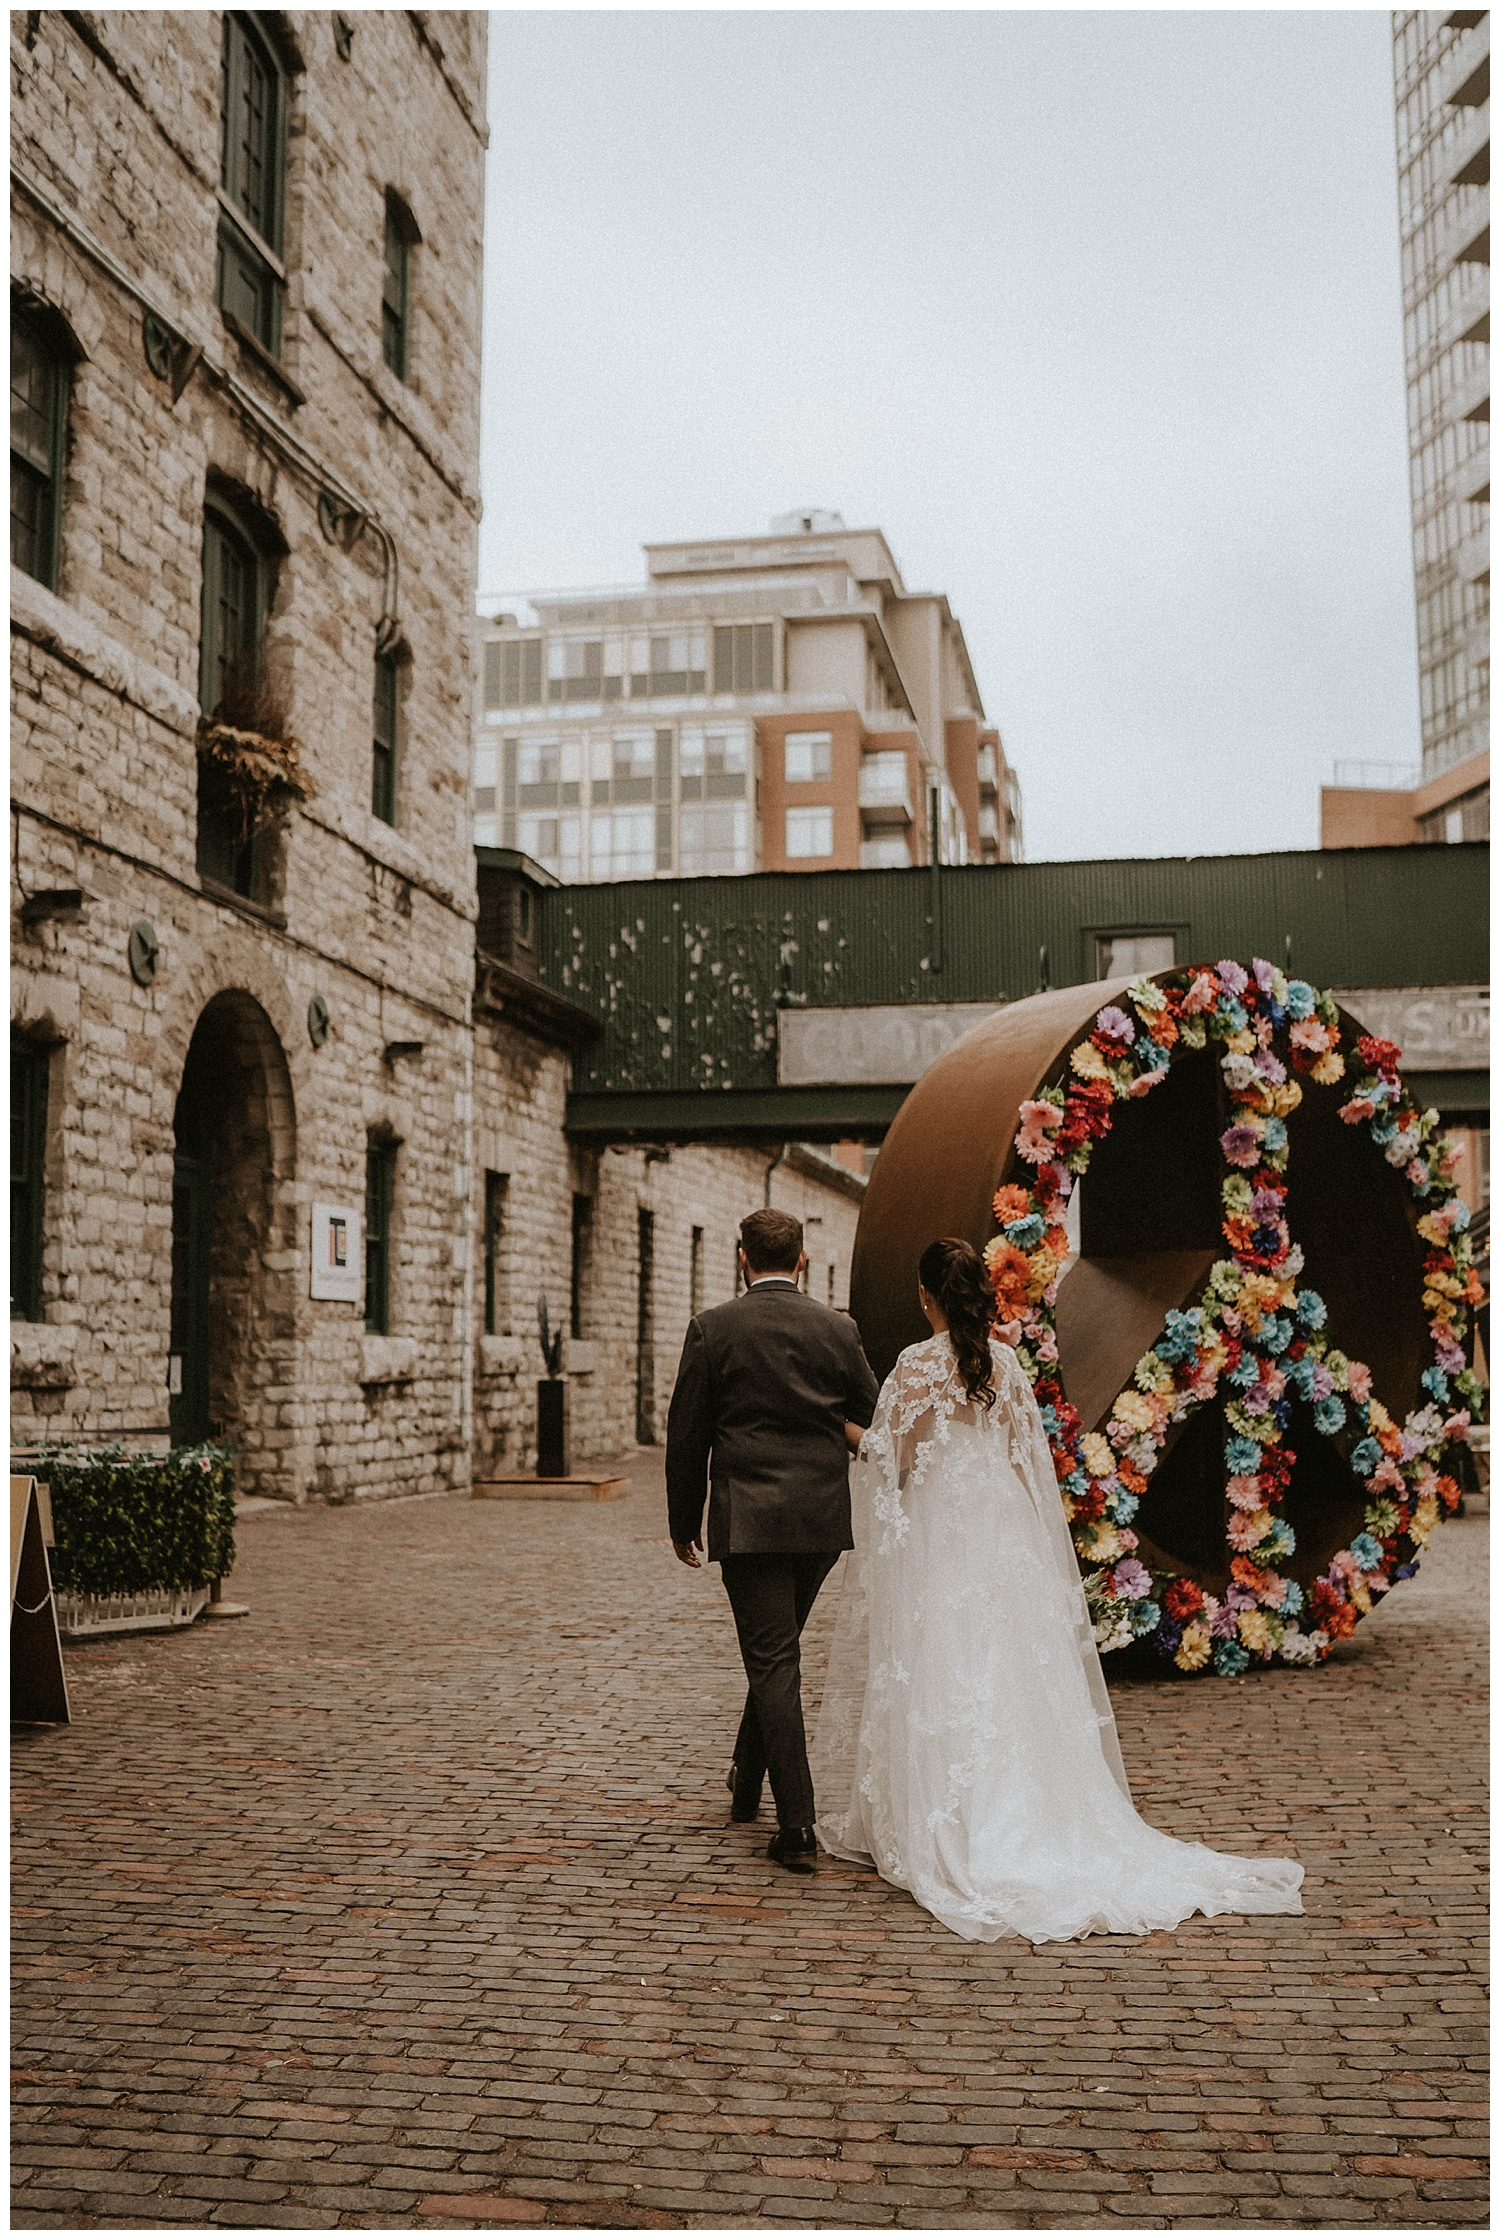 Katie Marie Photography | Archeo Wedding Arta Gallery Wedding | Distillery District Wedding | Toronto Wedding Photographer | Hamilton Toronto Ontario Wedding Photographer |_0025.jpg